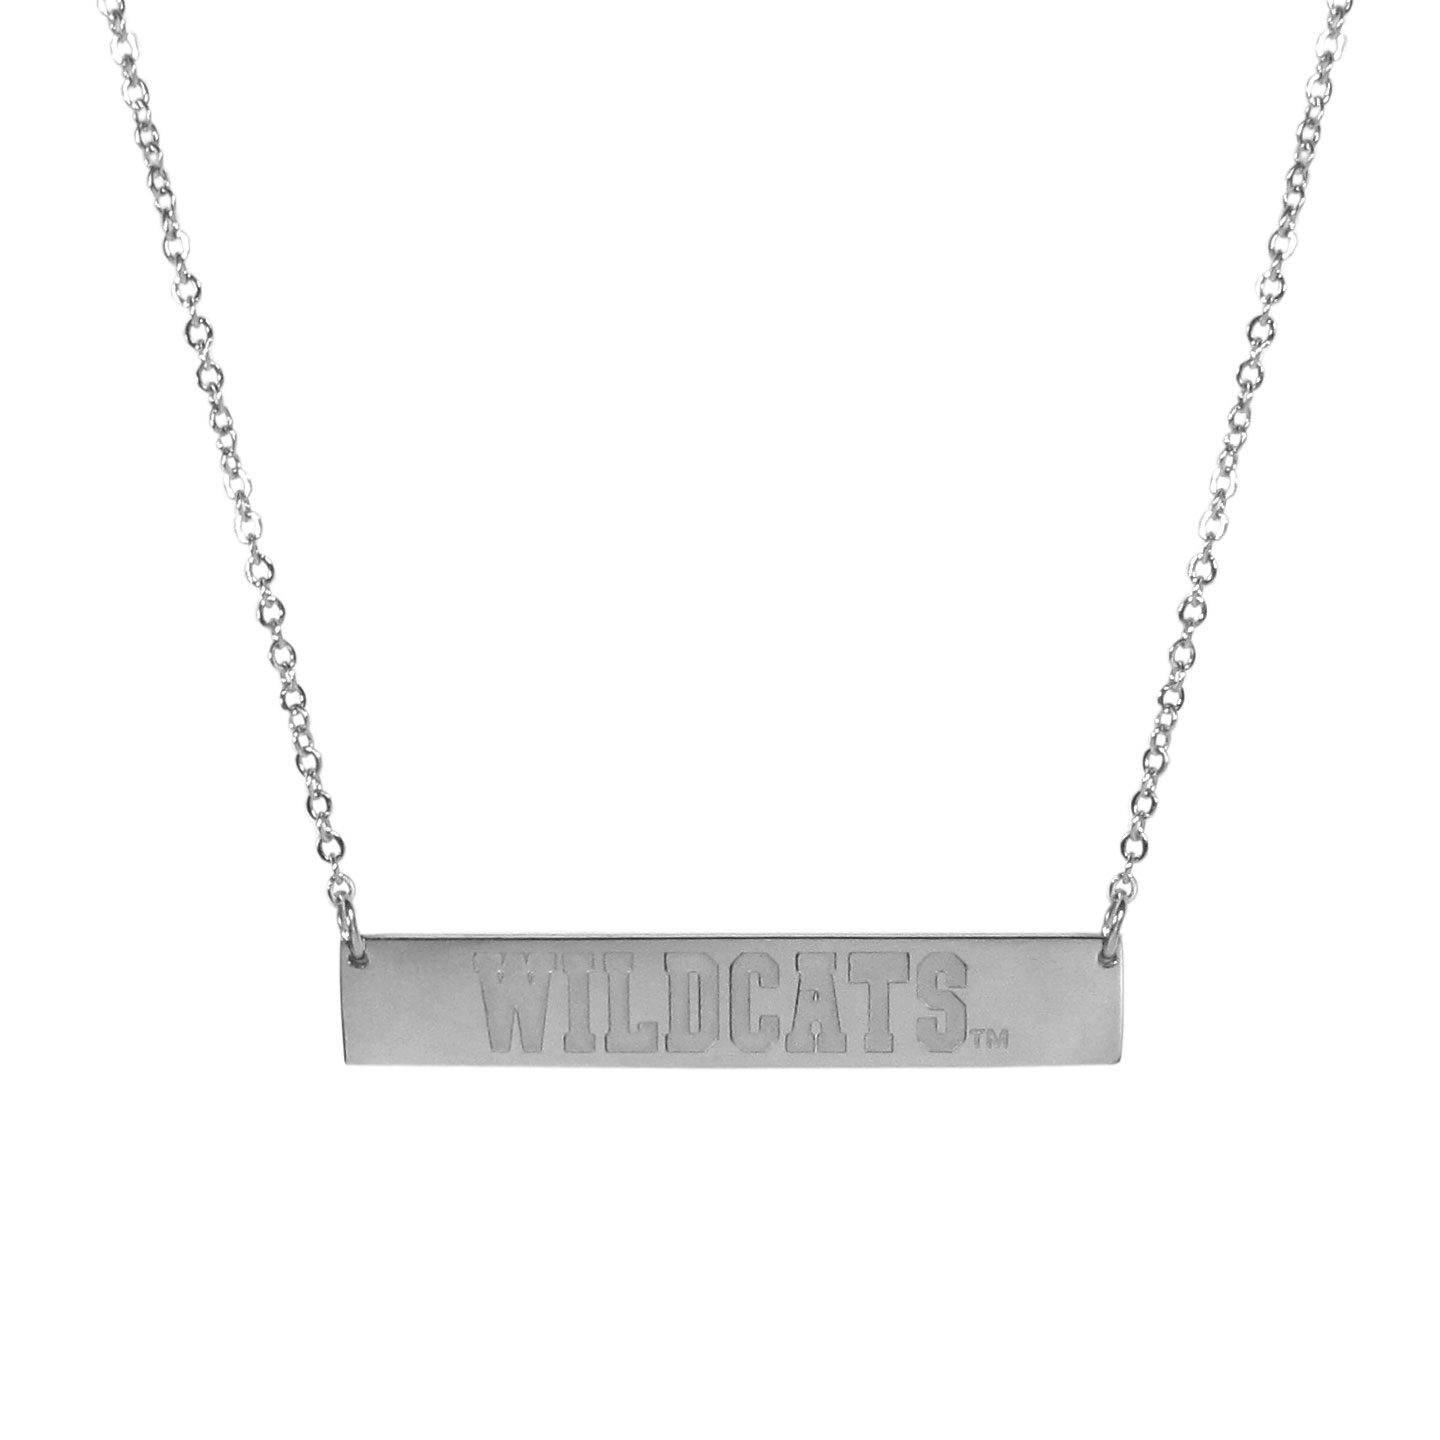 Kentucky Wildcats Bar Necklace - Simply beautiful Kentucky Wildcats bar necklace on a 20 inch link chain with 2 inch adjustable extender. This light-weight bar necklace has a stylish silver colored finish with the team name expertly etched on the 1.5 inch bar. Every female  fan will enjoy this contempory fashion accessory.